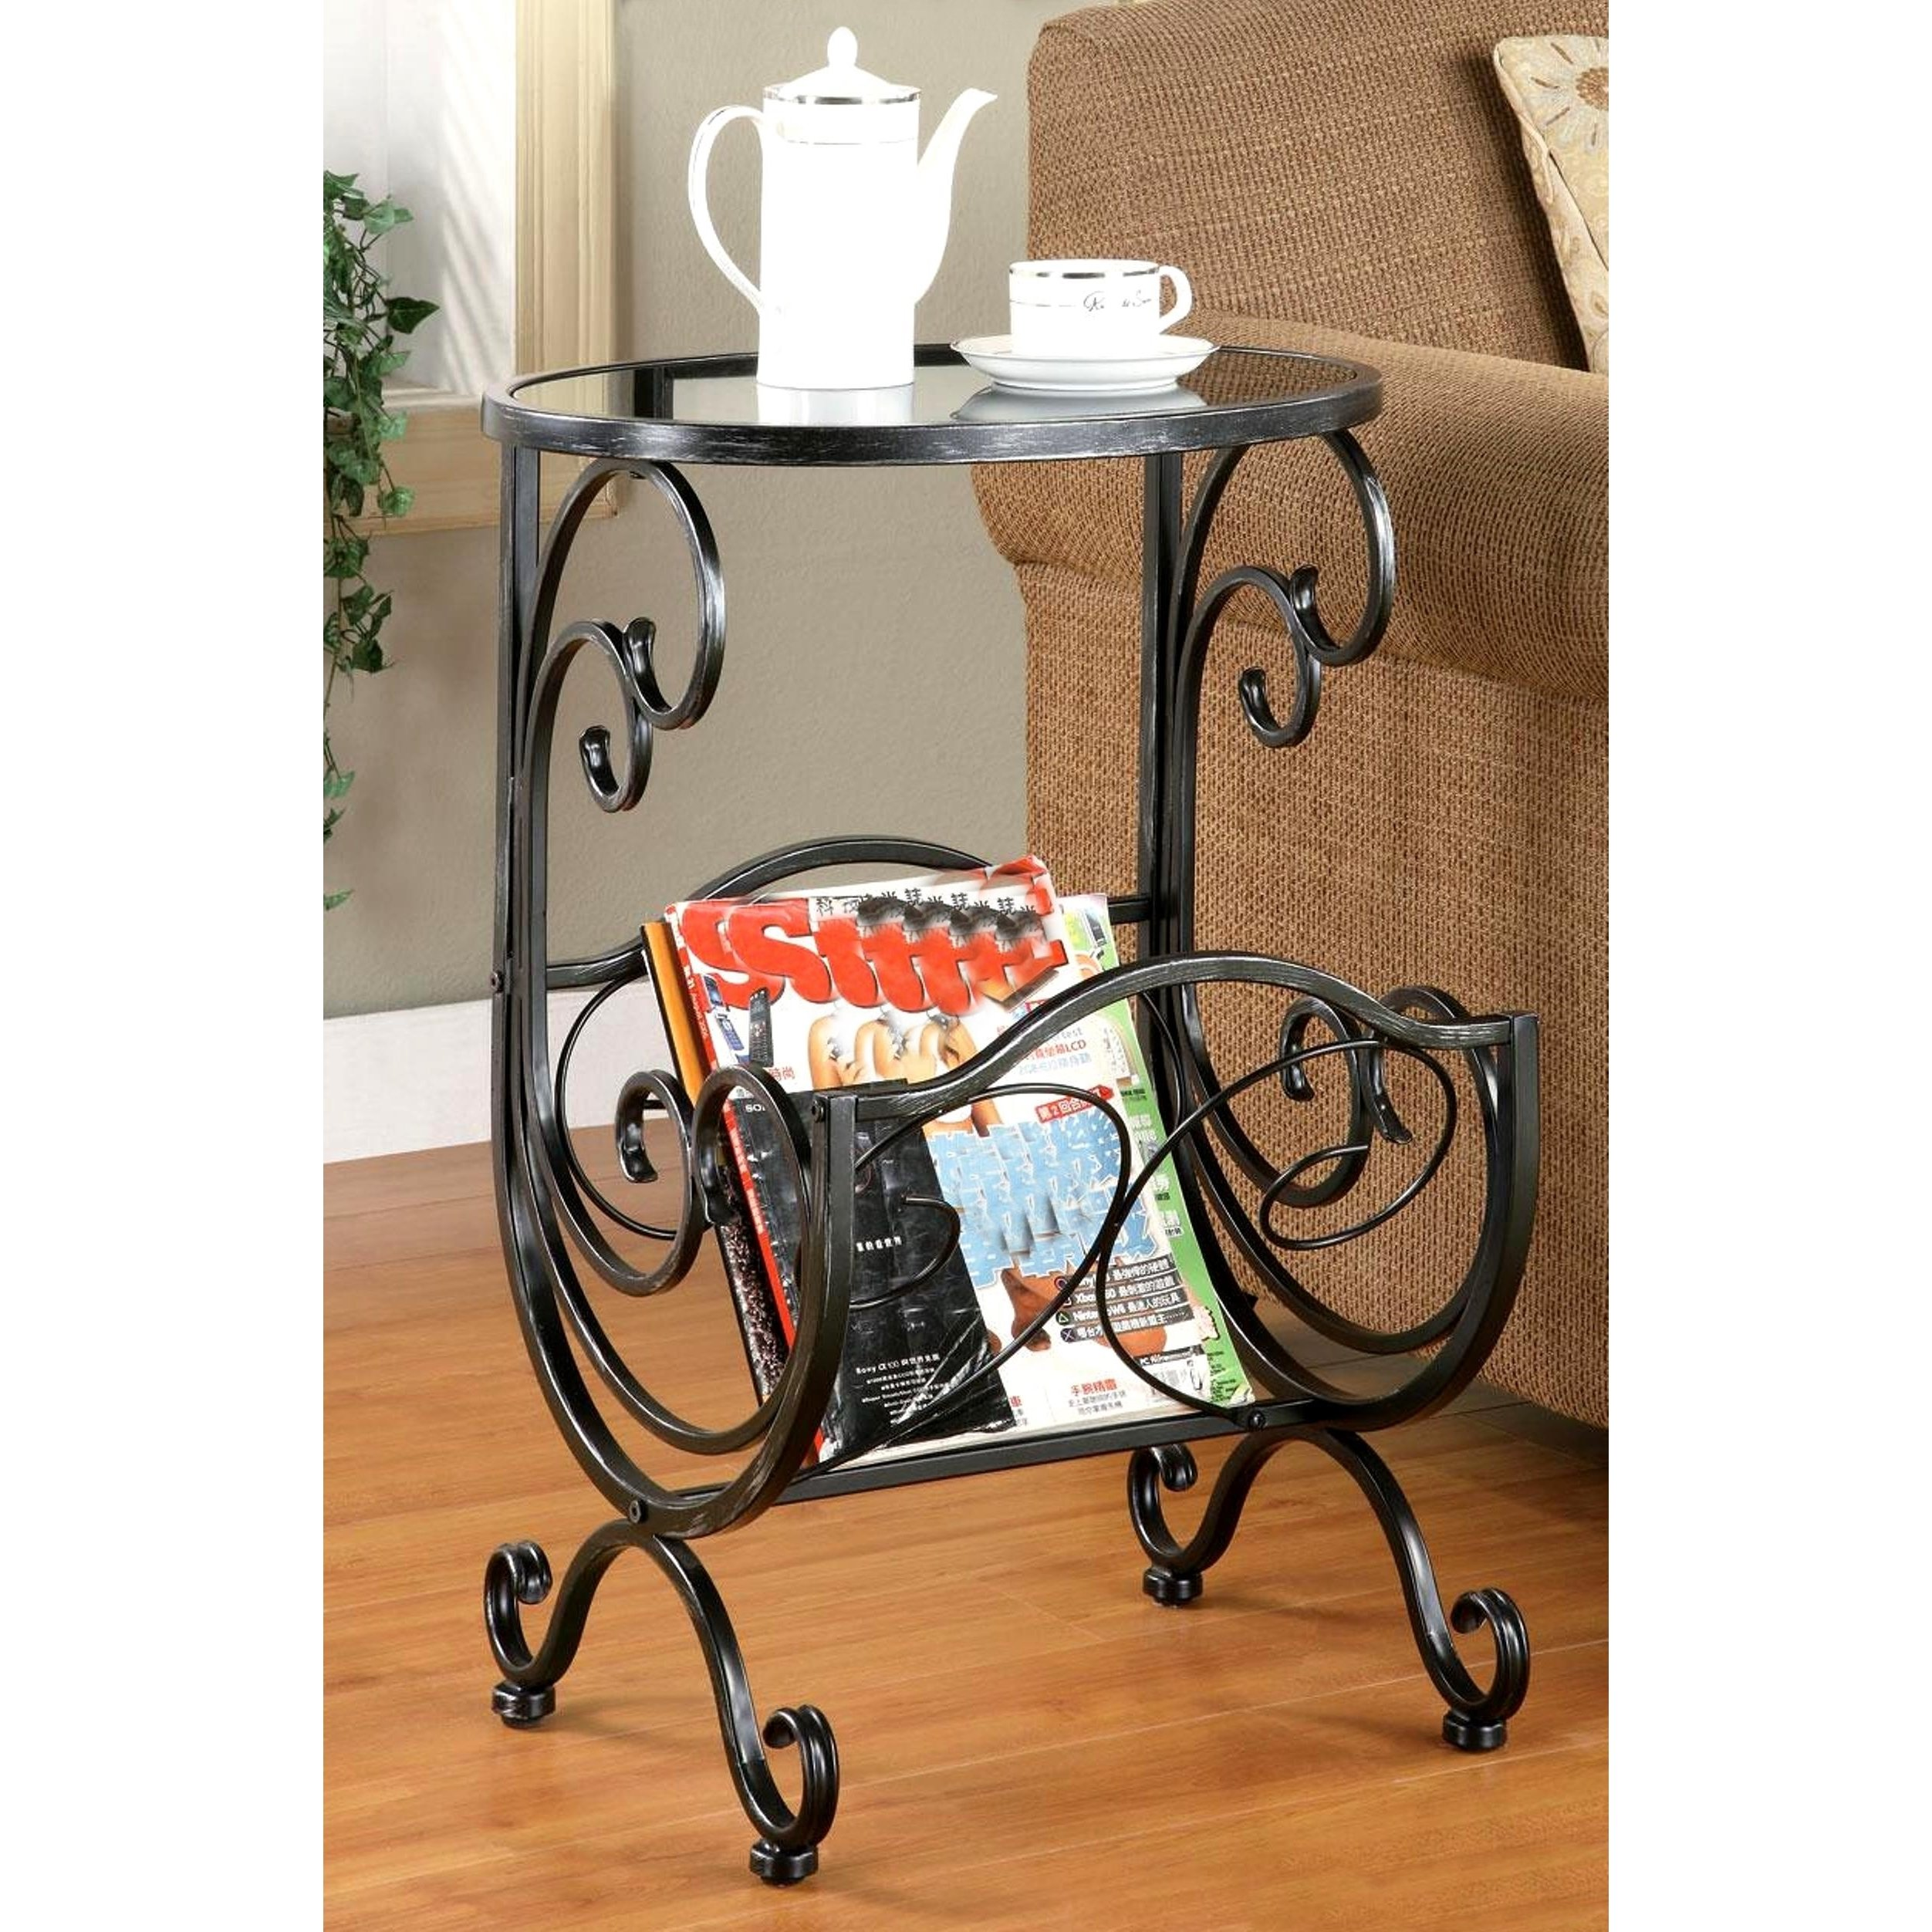 scrolling design metal and glass top accent table with magazine rack holder free shipping today target round chairs outdoor patio furniture mid century style dining coastal lamps